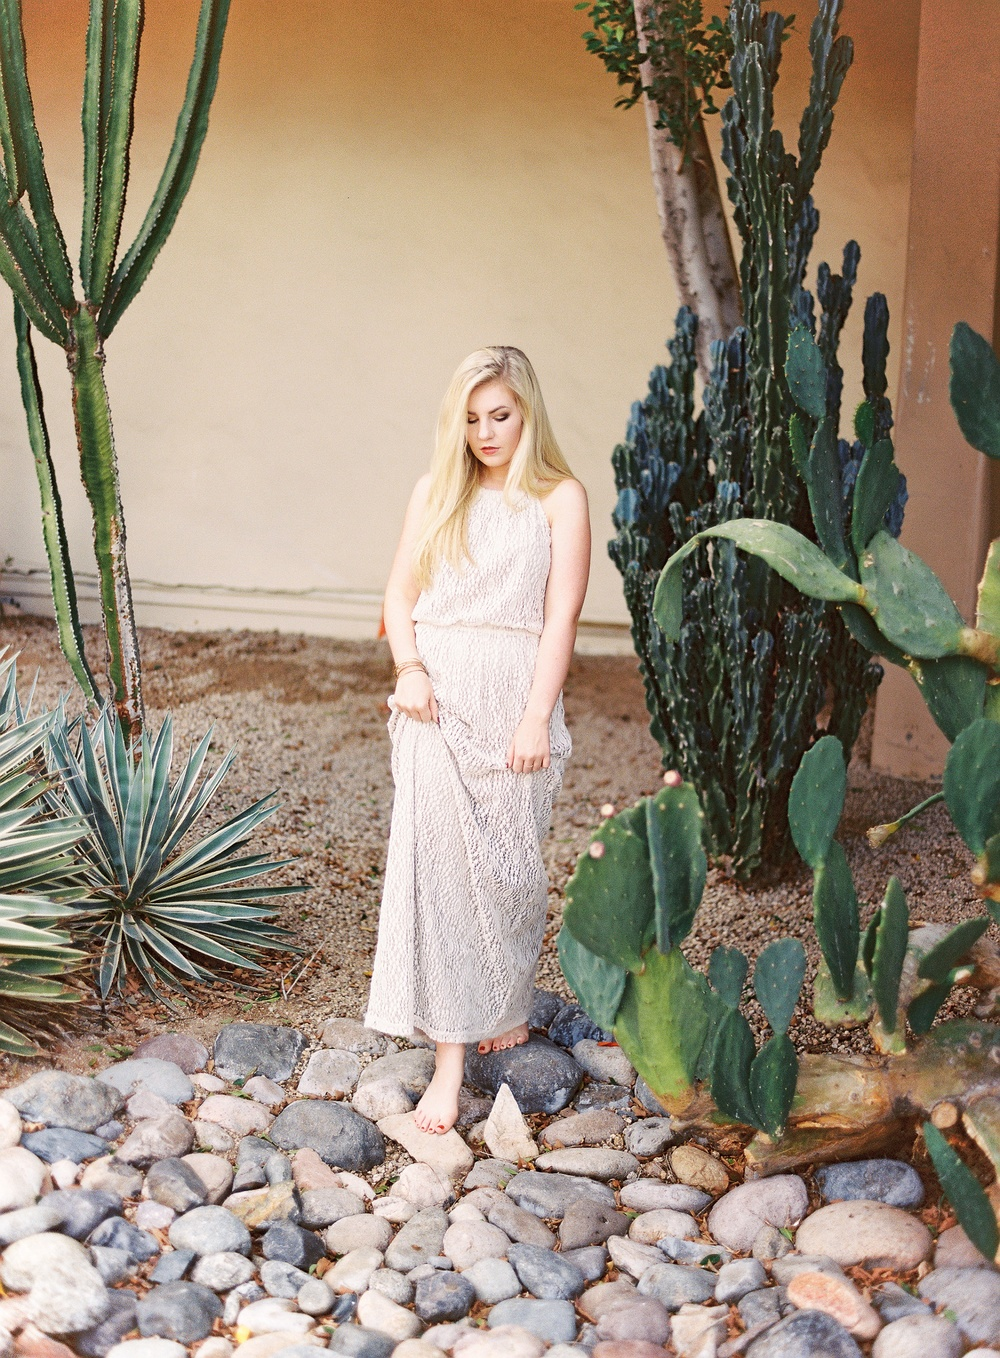 Scottsdale-Arizona- film-portrait-session-skyline-fireside-hotel-Hope-Taylor-by-Natalie-Jayne-Photography